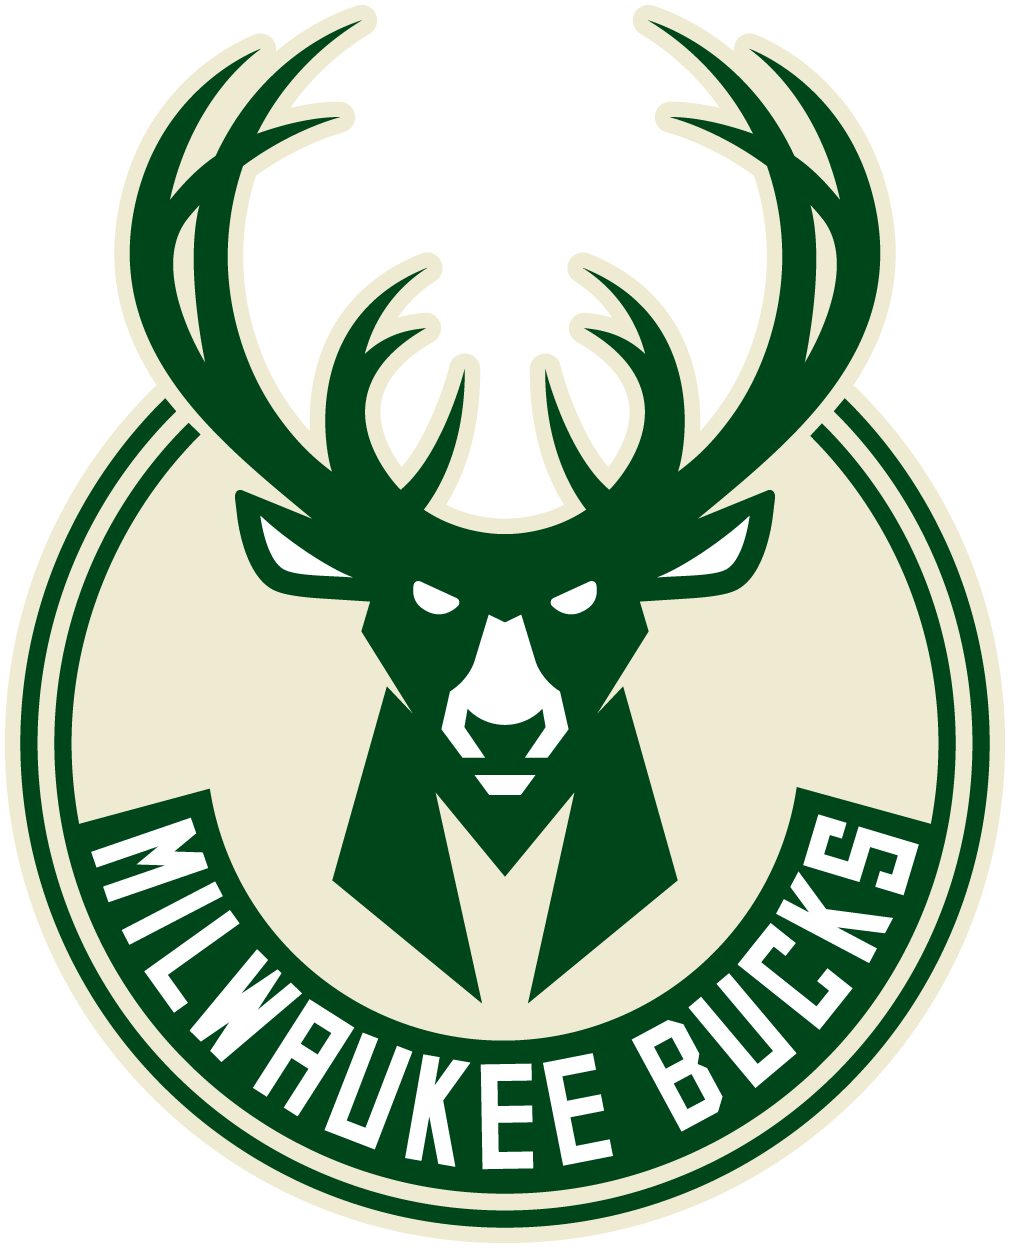 Waukesha Metal Products Joins Milwaukee Bucks to Honor Local Military Members